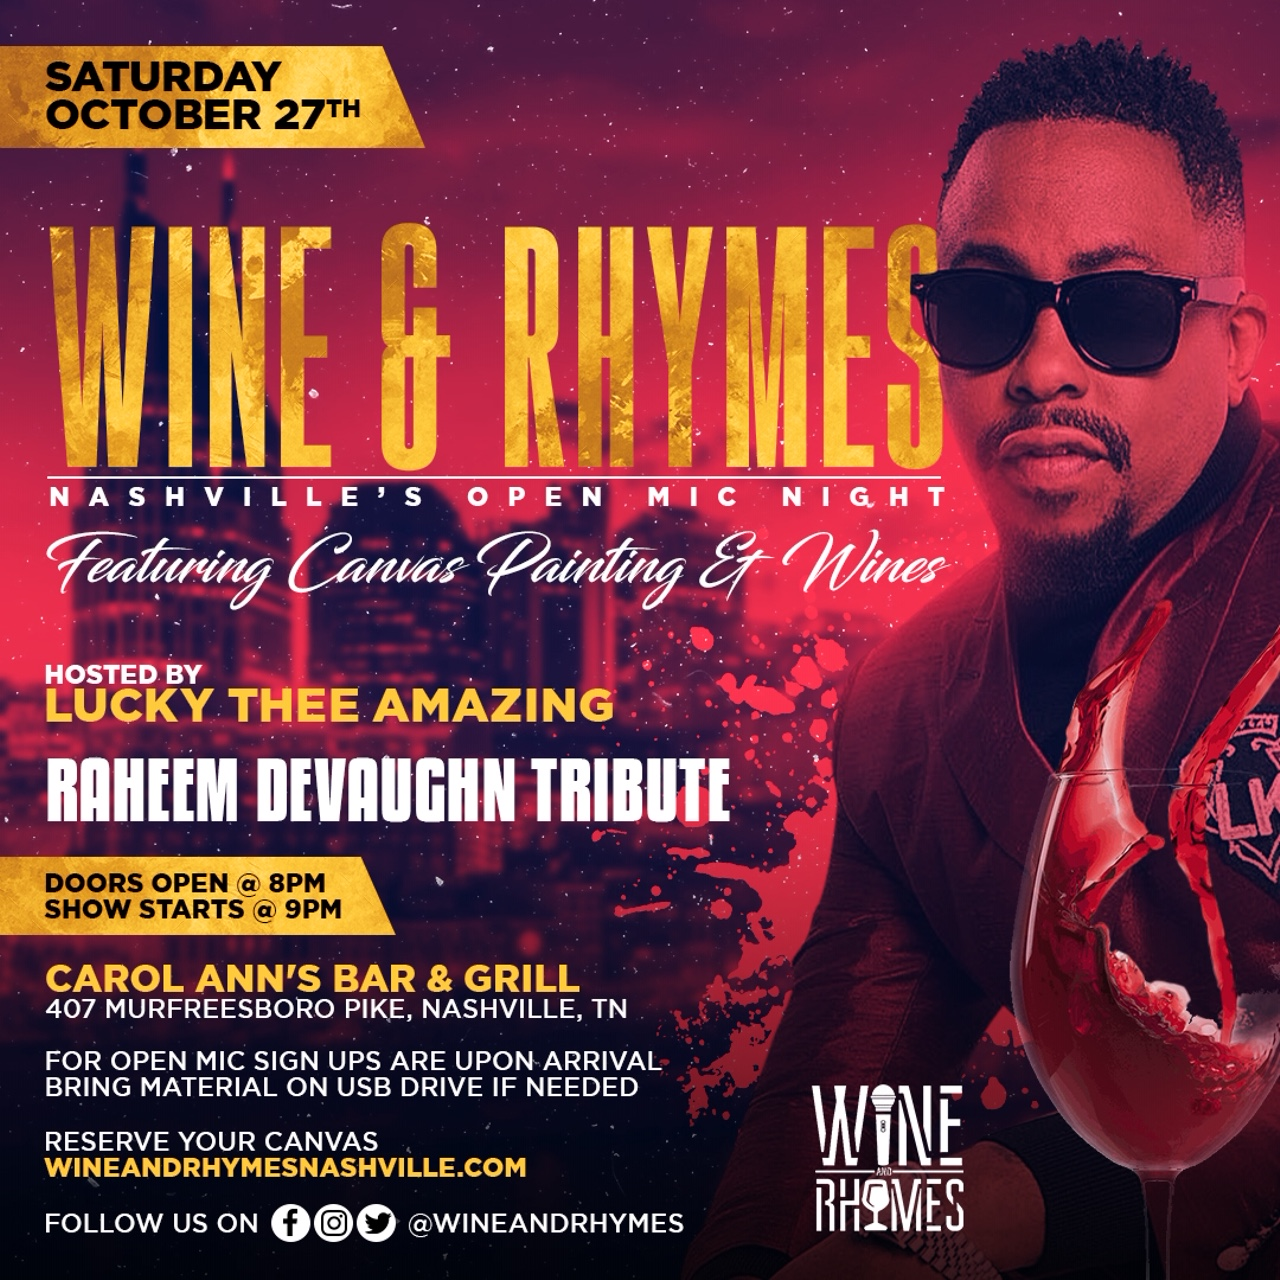 WINE-&-RHYMES-Nashville's-Open-Mic-Night.JPG